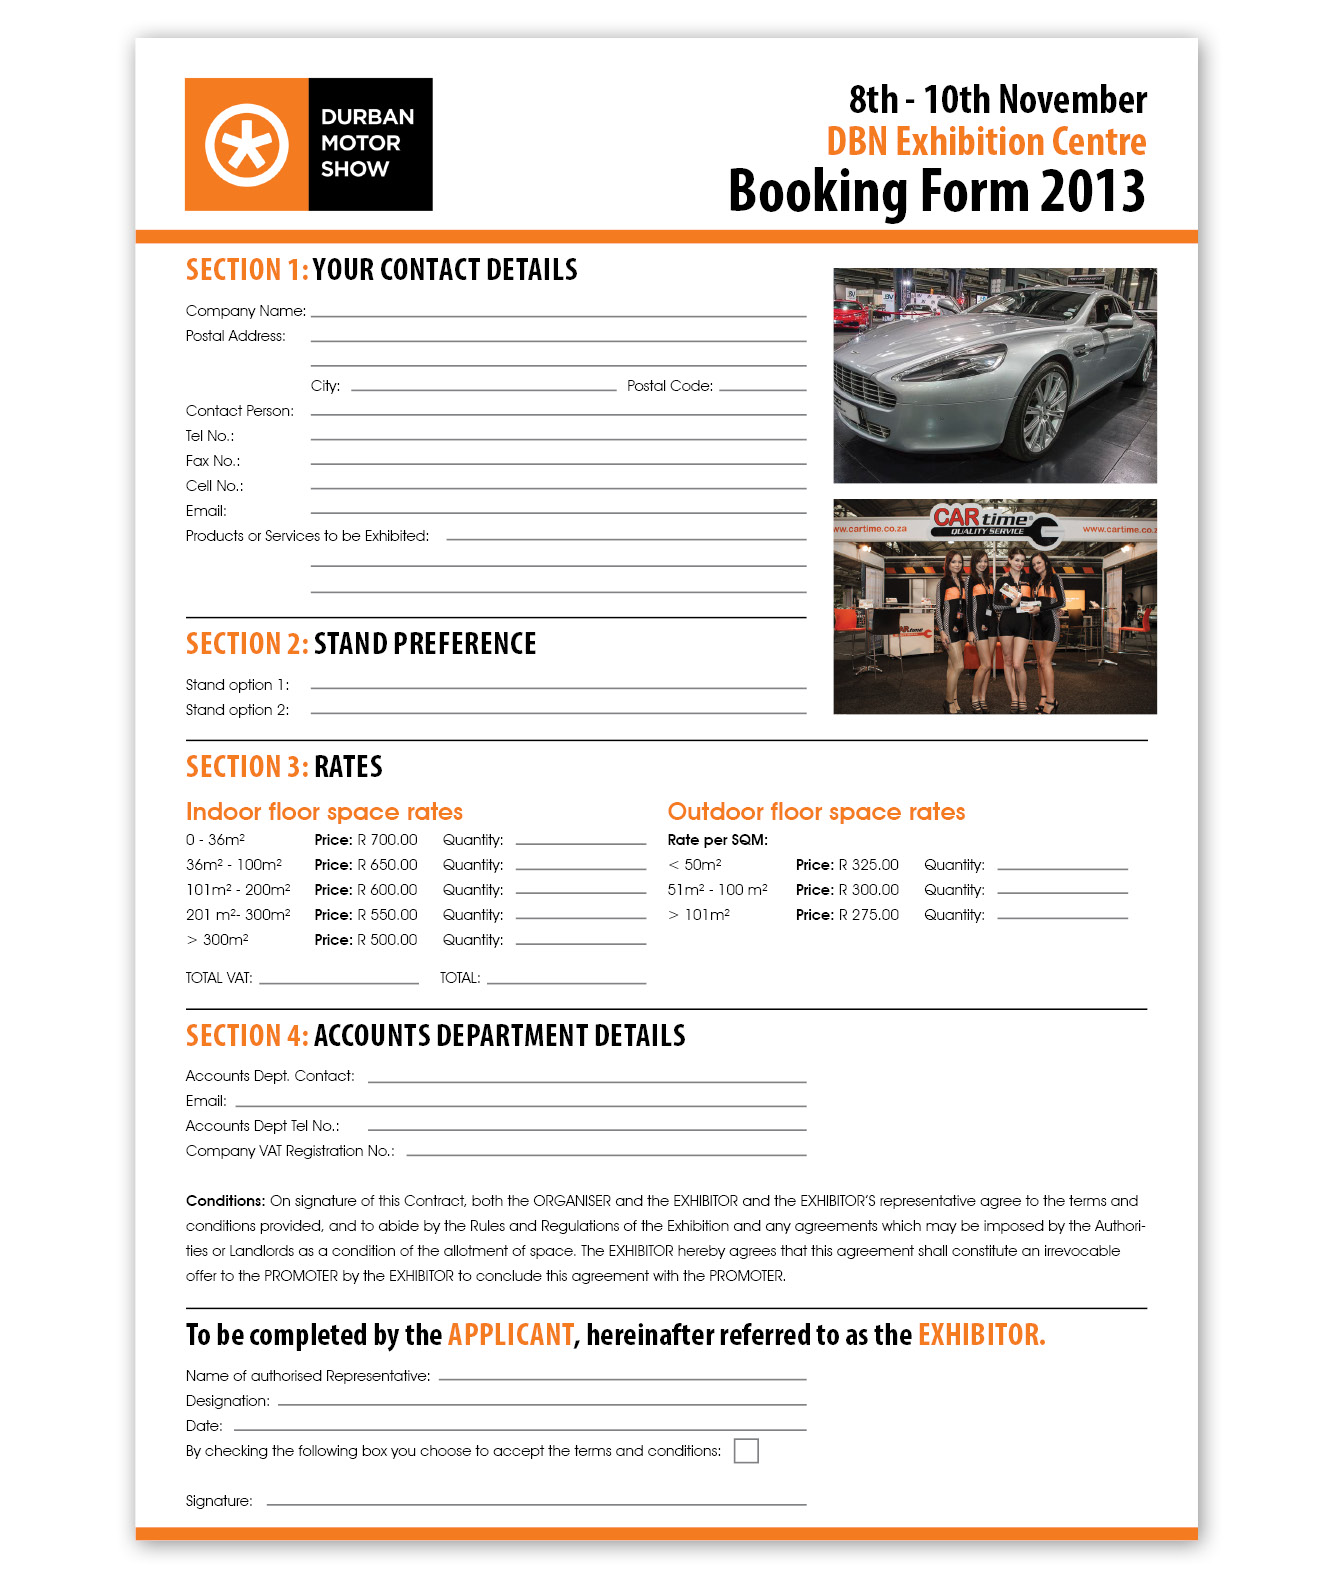 Durban Motor Show Booking Form Design